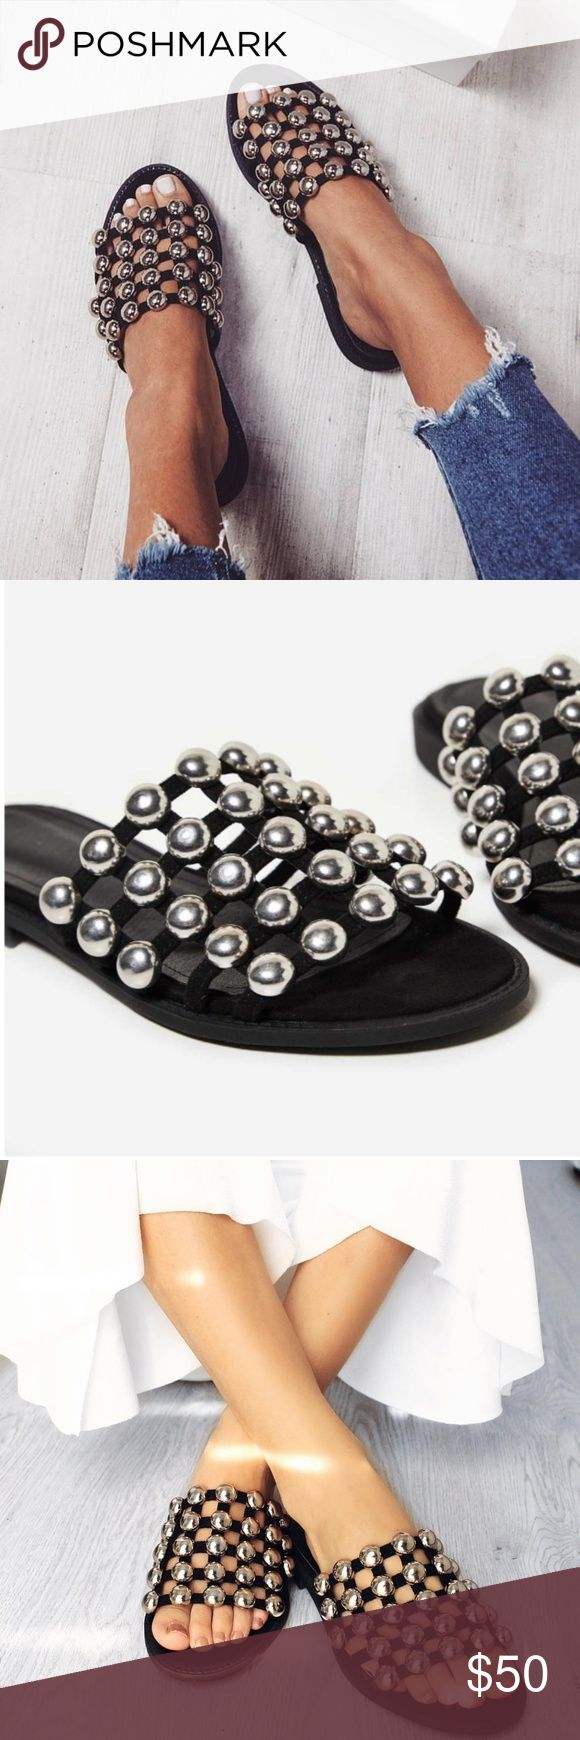 Black studded slides Seem on your favorite Bloggers! Studded Backless Sandal With Open Toe.   With Faux Suede Material And Single Front Strap, It's Perfect For Those Days On The Beach. Throw These On With Frayed Denim High-Waisted Shorts And Cropped Cami. Comes with box.  Black  Material: Synthetic Shoes Sandals